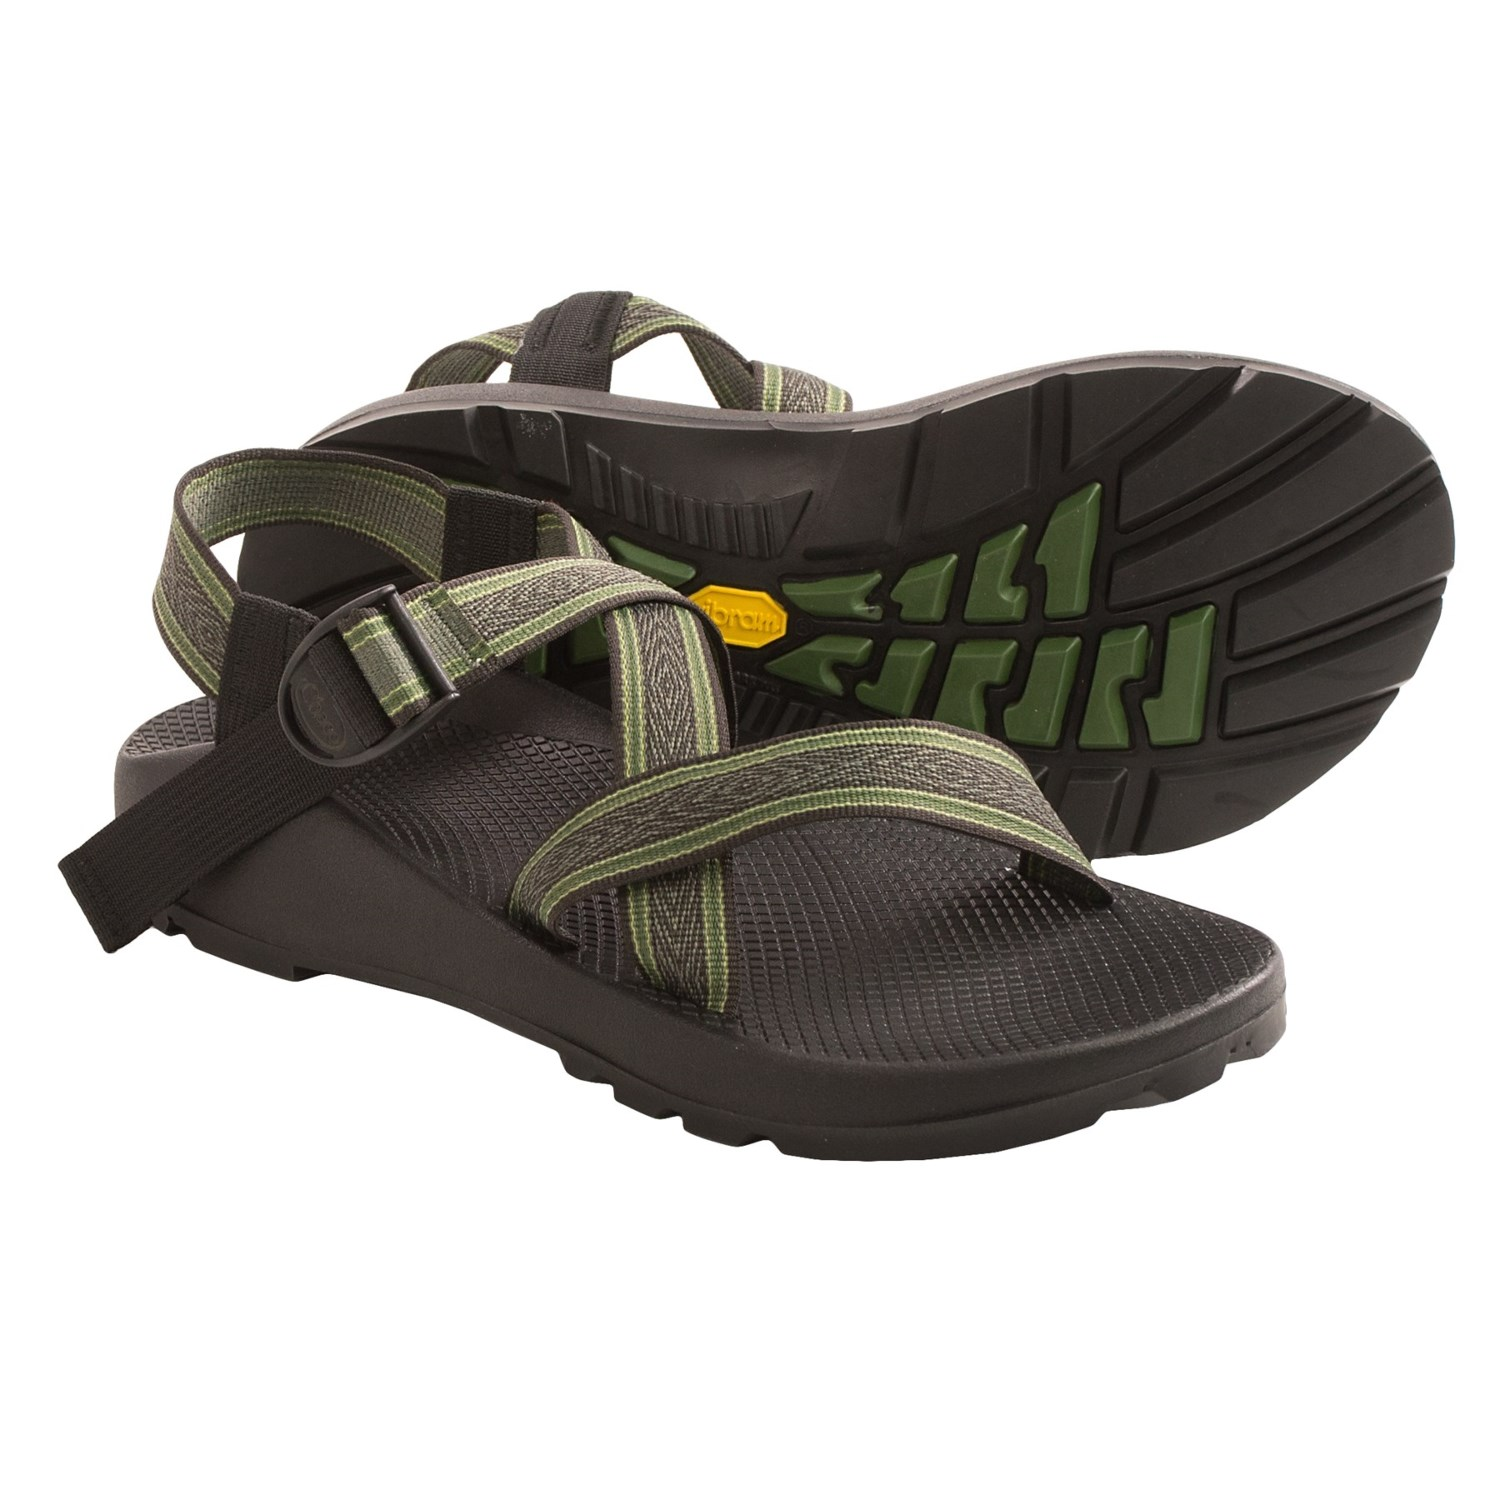 04c529c706e4 Chaco Z 1 Unaweep Sandals (For Men) in Forest Green ...